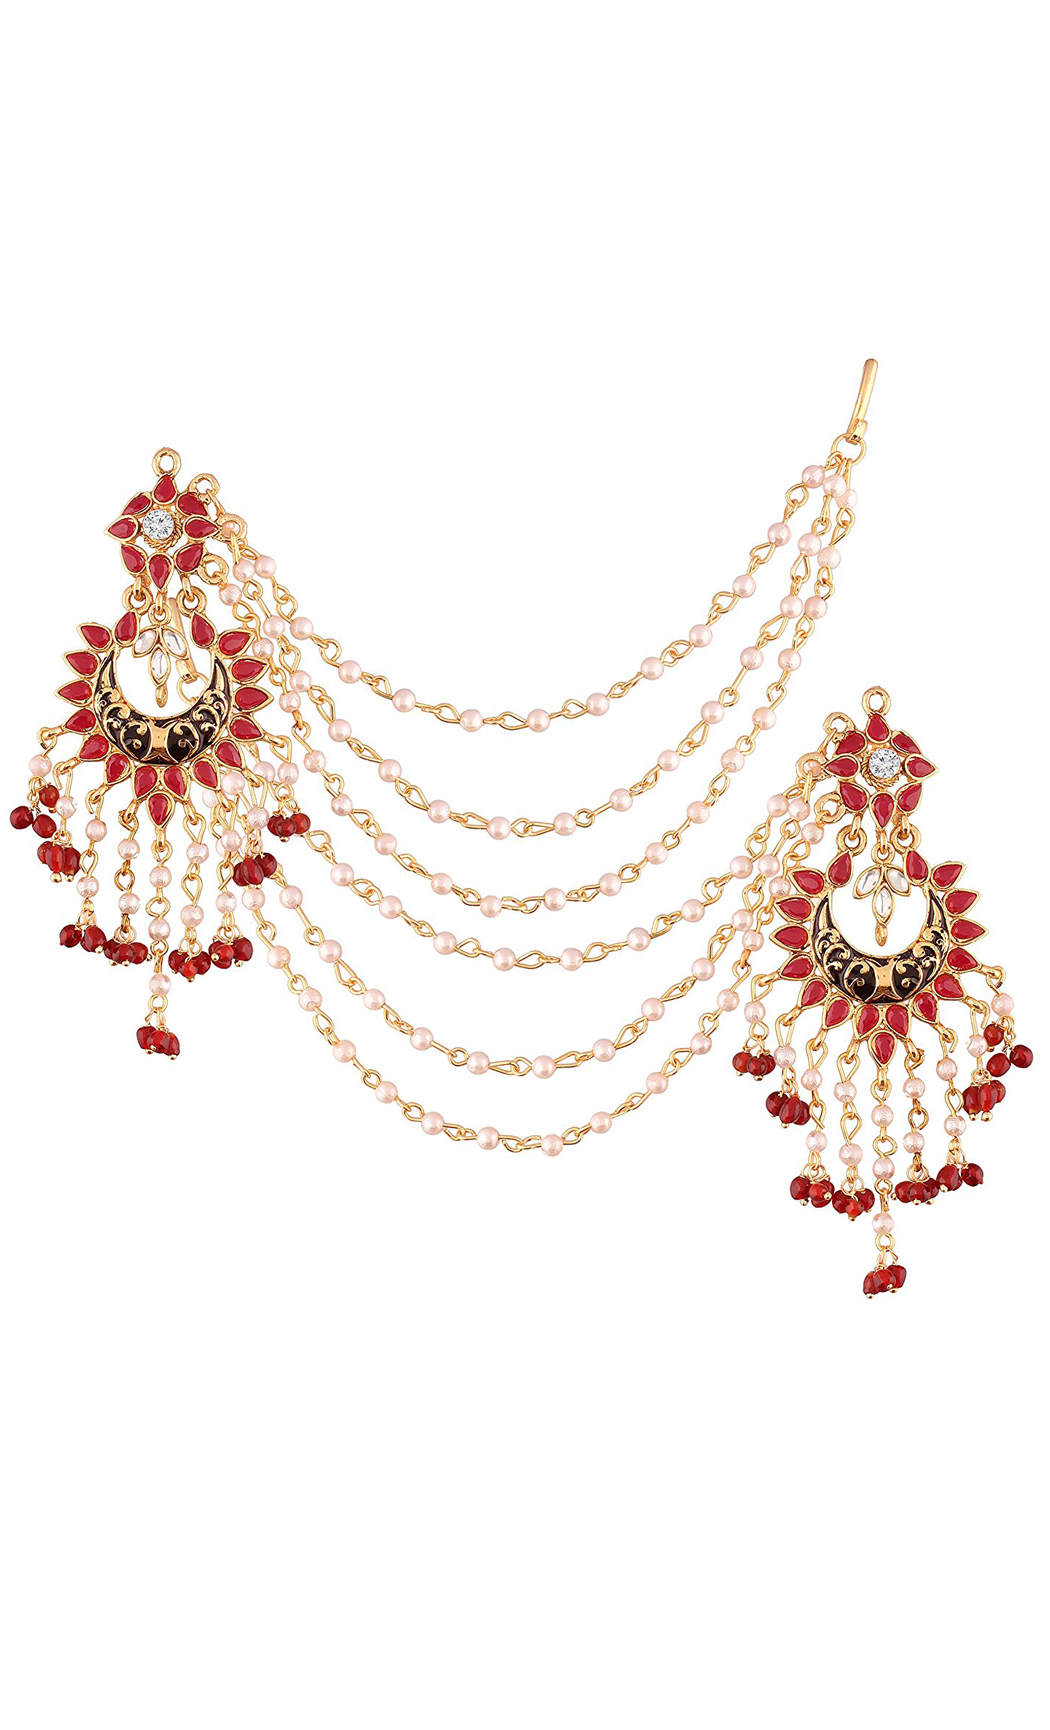 Red and Pearl Chandelier Earrings with Pearl Hair Chains - Shop Online